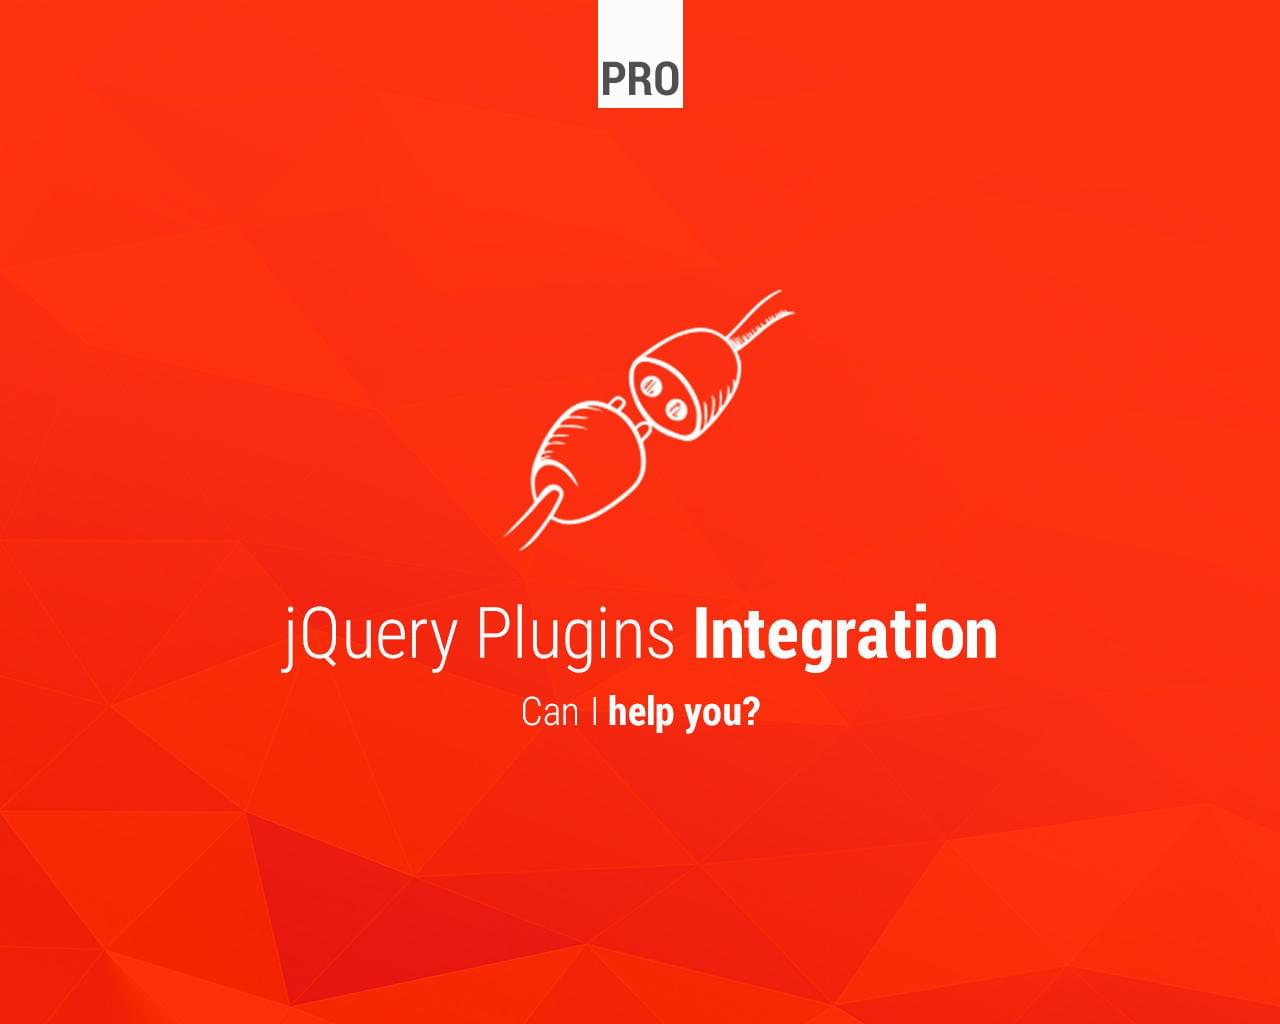 jQuery Plugins Integration by Lukasz_Czerwinski - 113561